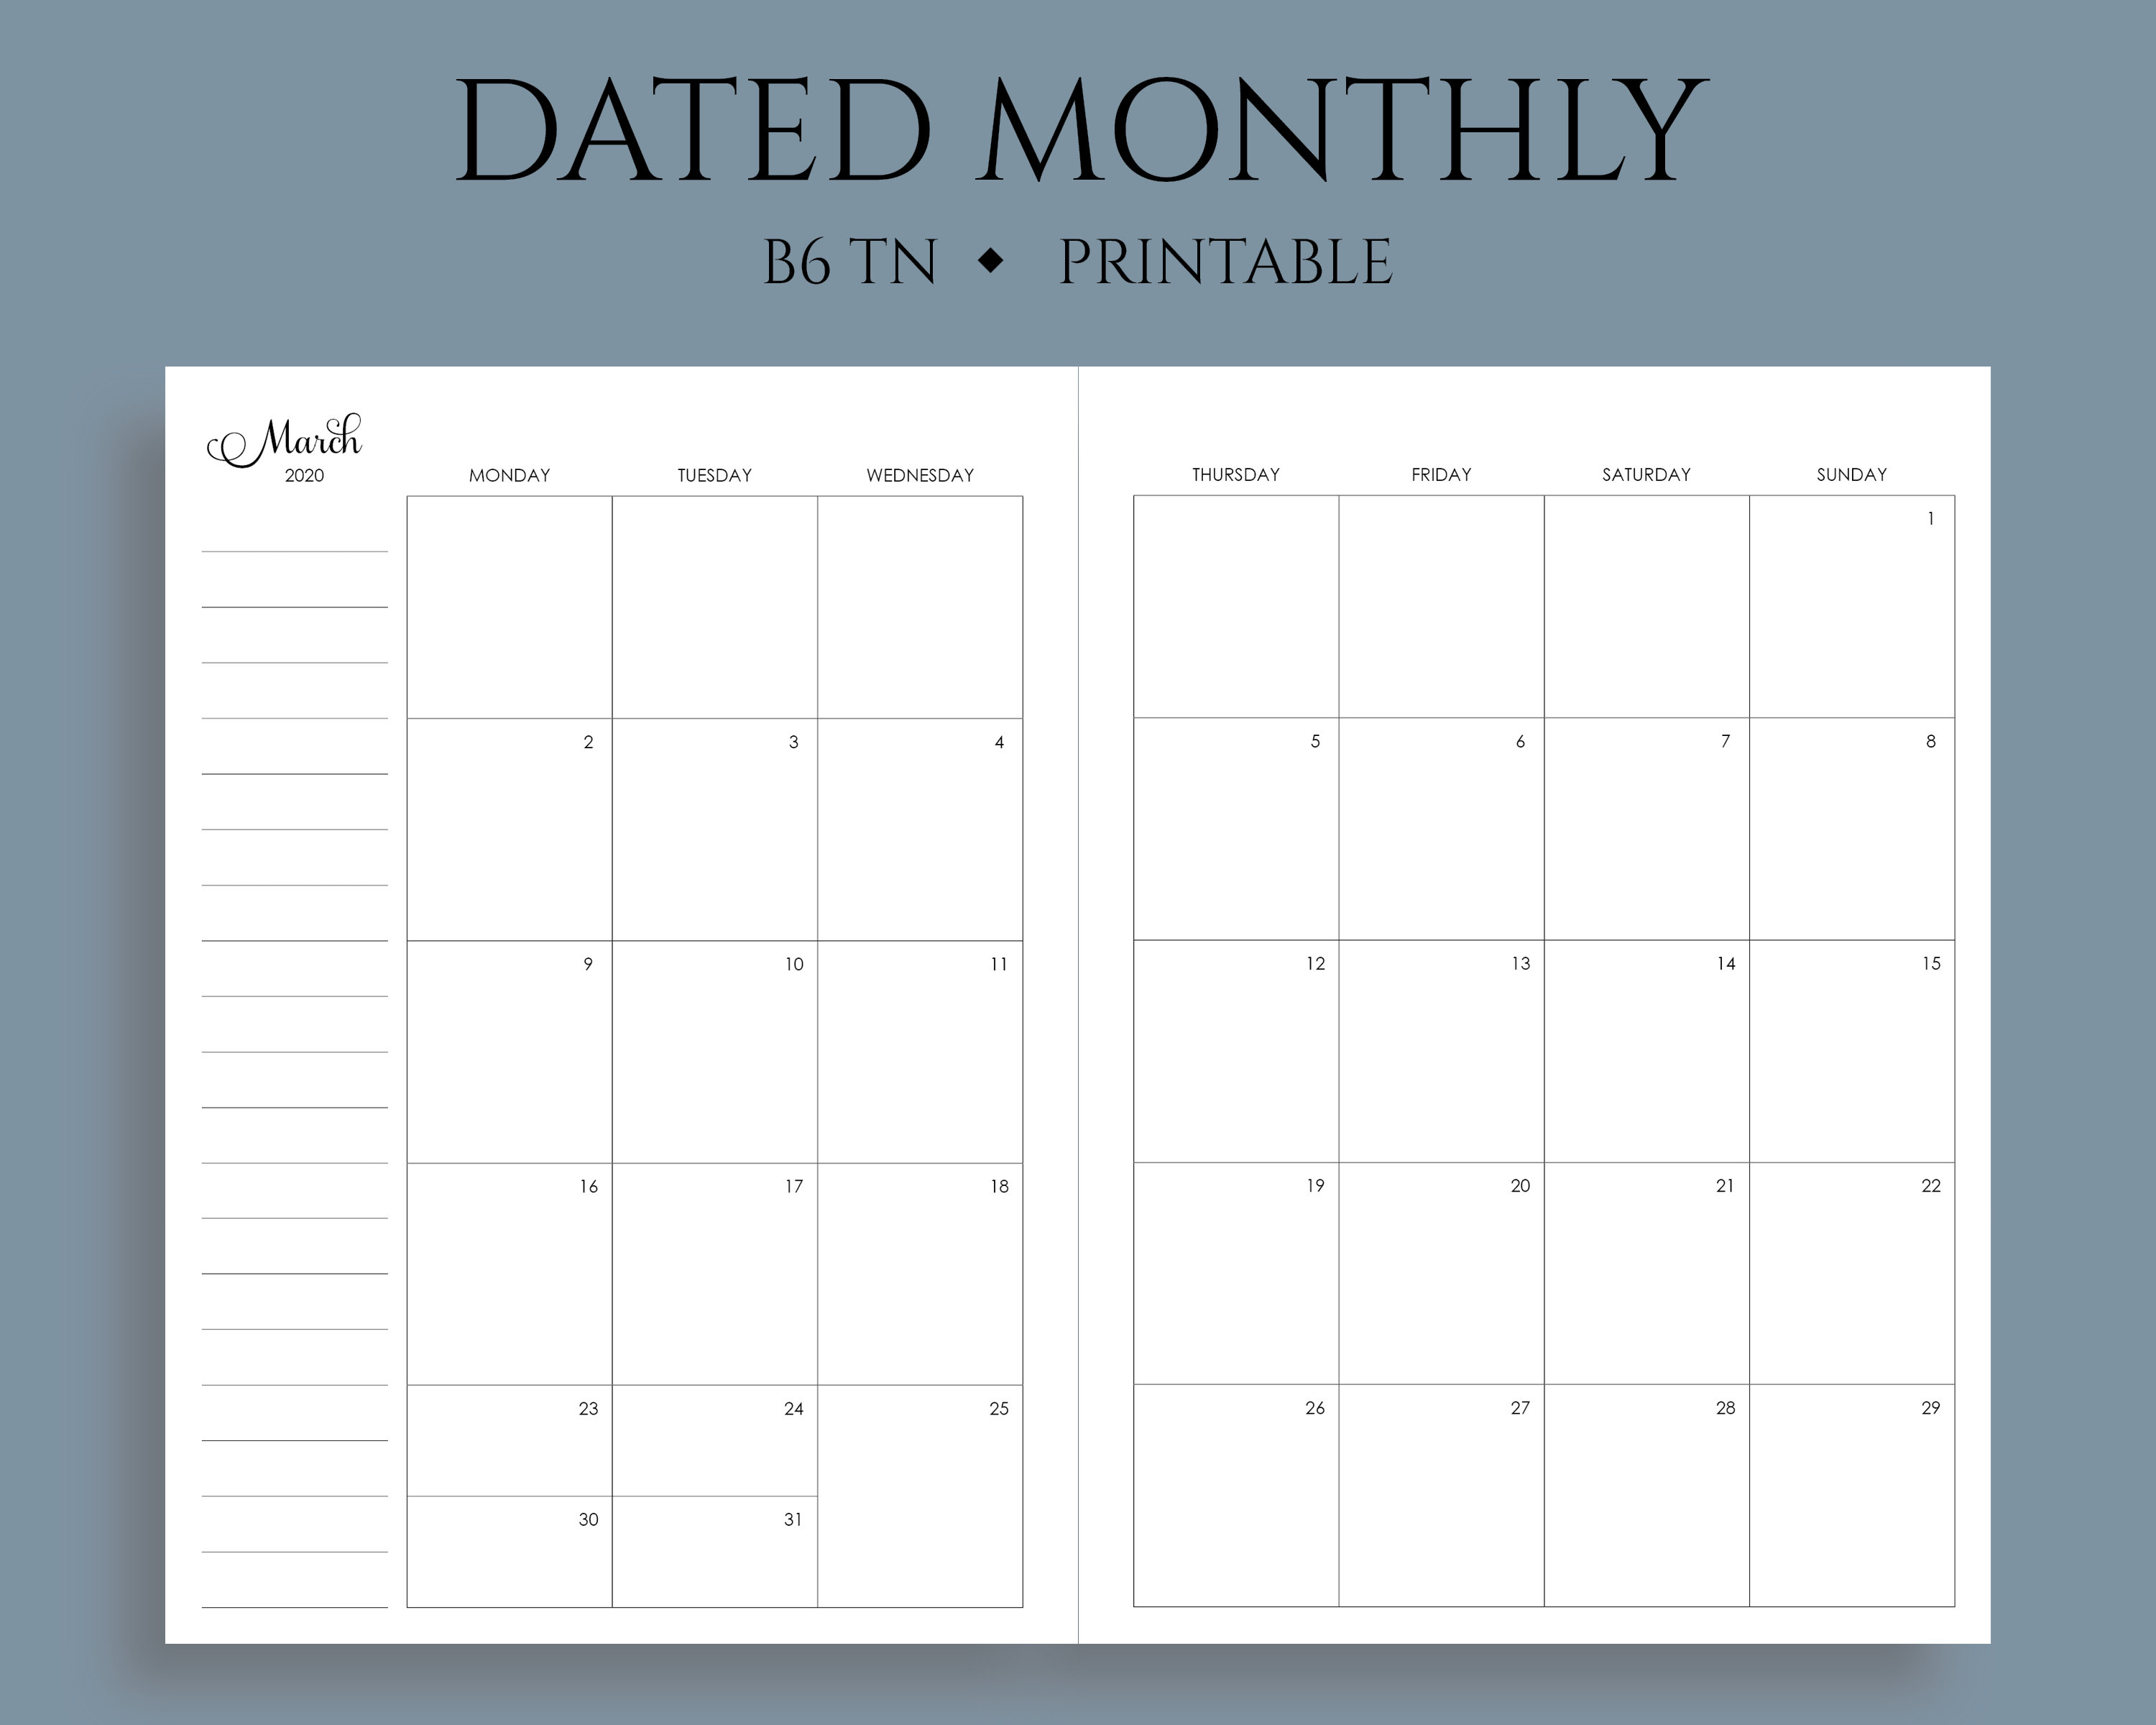 "2020 Dated Monthly Calendar Printable Planner Inserts, Monday Start, Mo2P,  U.s. Holidays ~ B6 Tn / No. 5 / 5"" X 7"" Pdf Download"